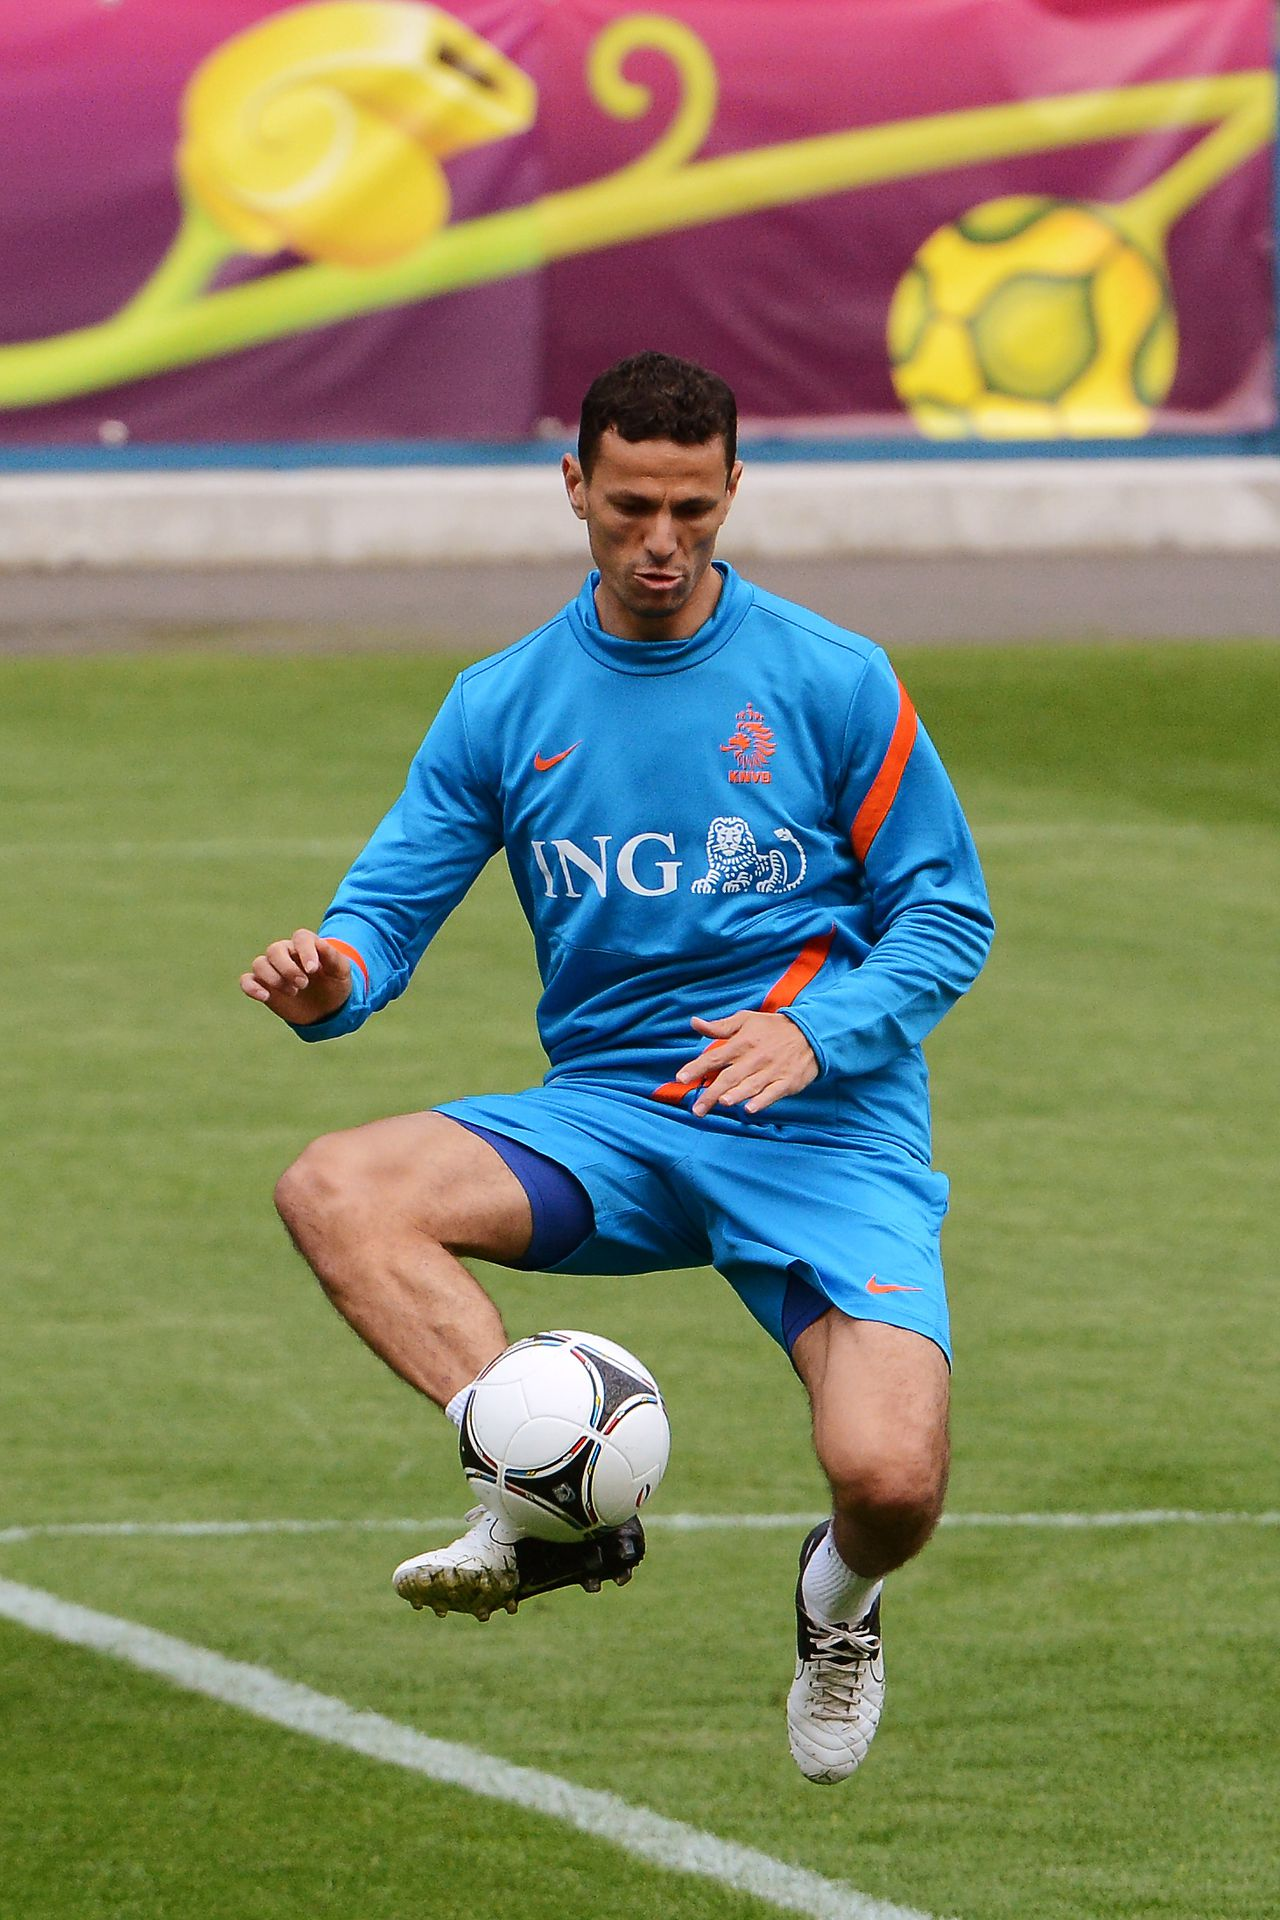 Khalid Boulahrouz controls the ball during a training session of the Netherlands at the Euro 2012 soccer championships in Krakow, Poland, Wednesday, June 6, 2012. (AP Photo/Geert Vanden Wijngaert)